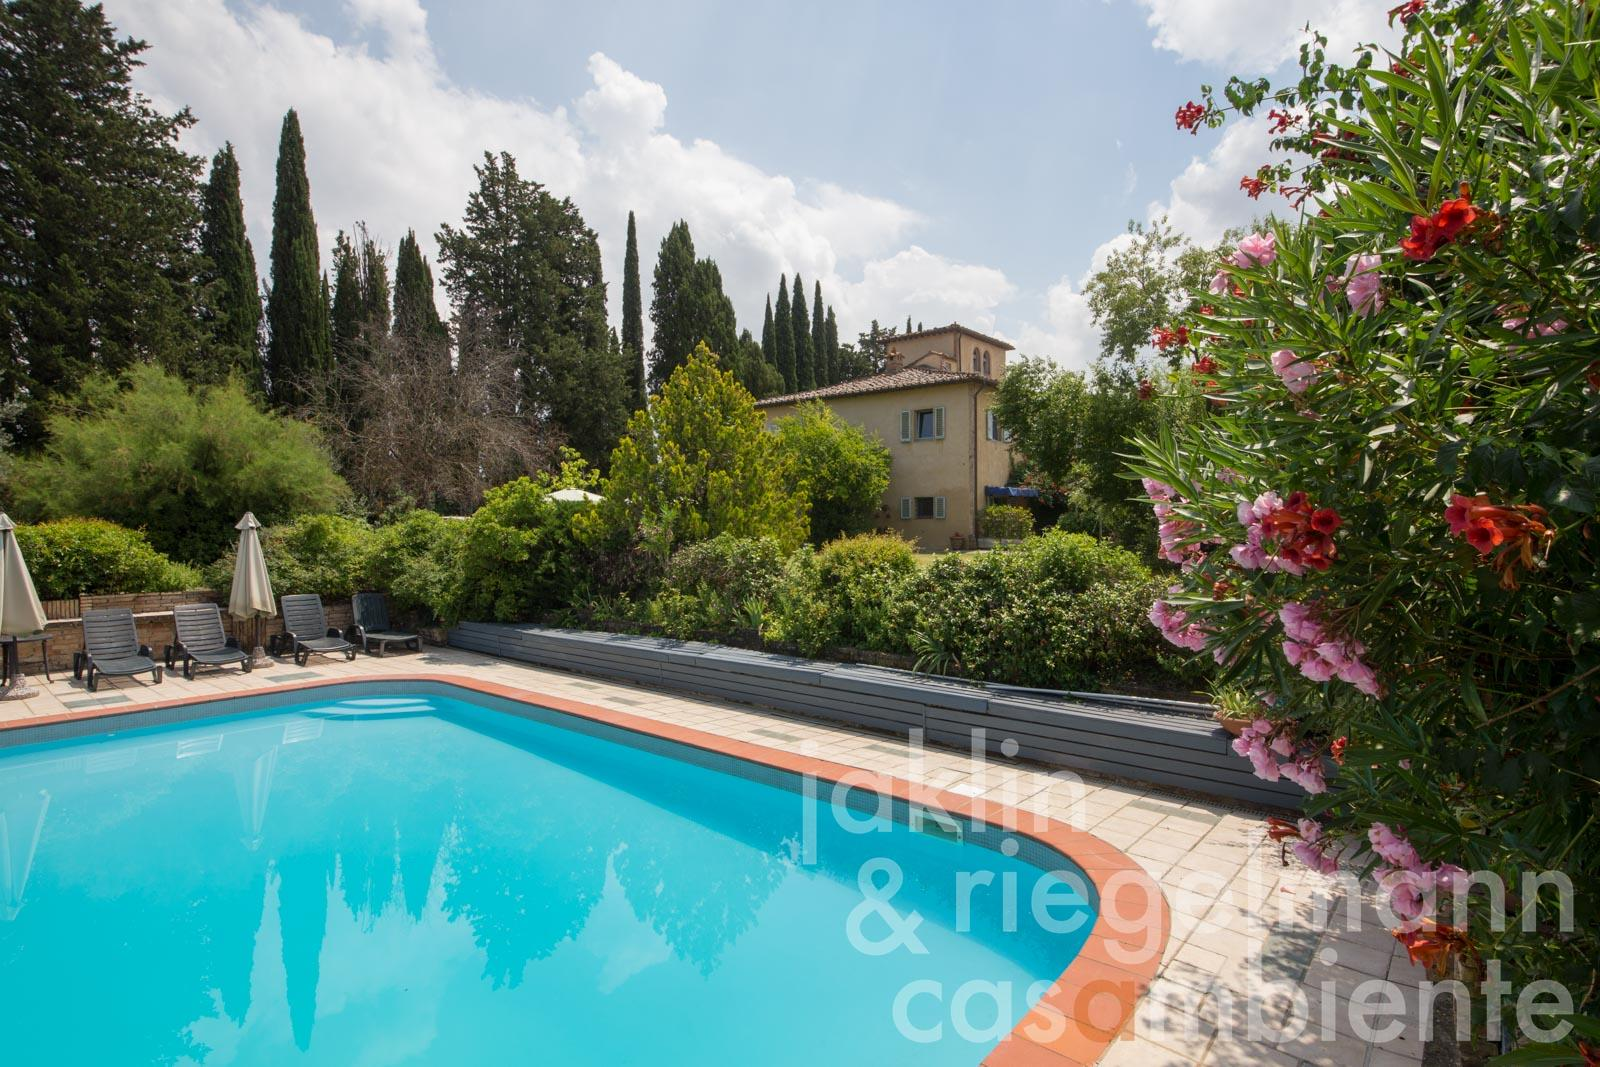 Beautiful country house with outbuilding and pool near San Gimignano in Tuscany